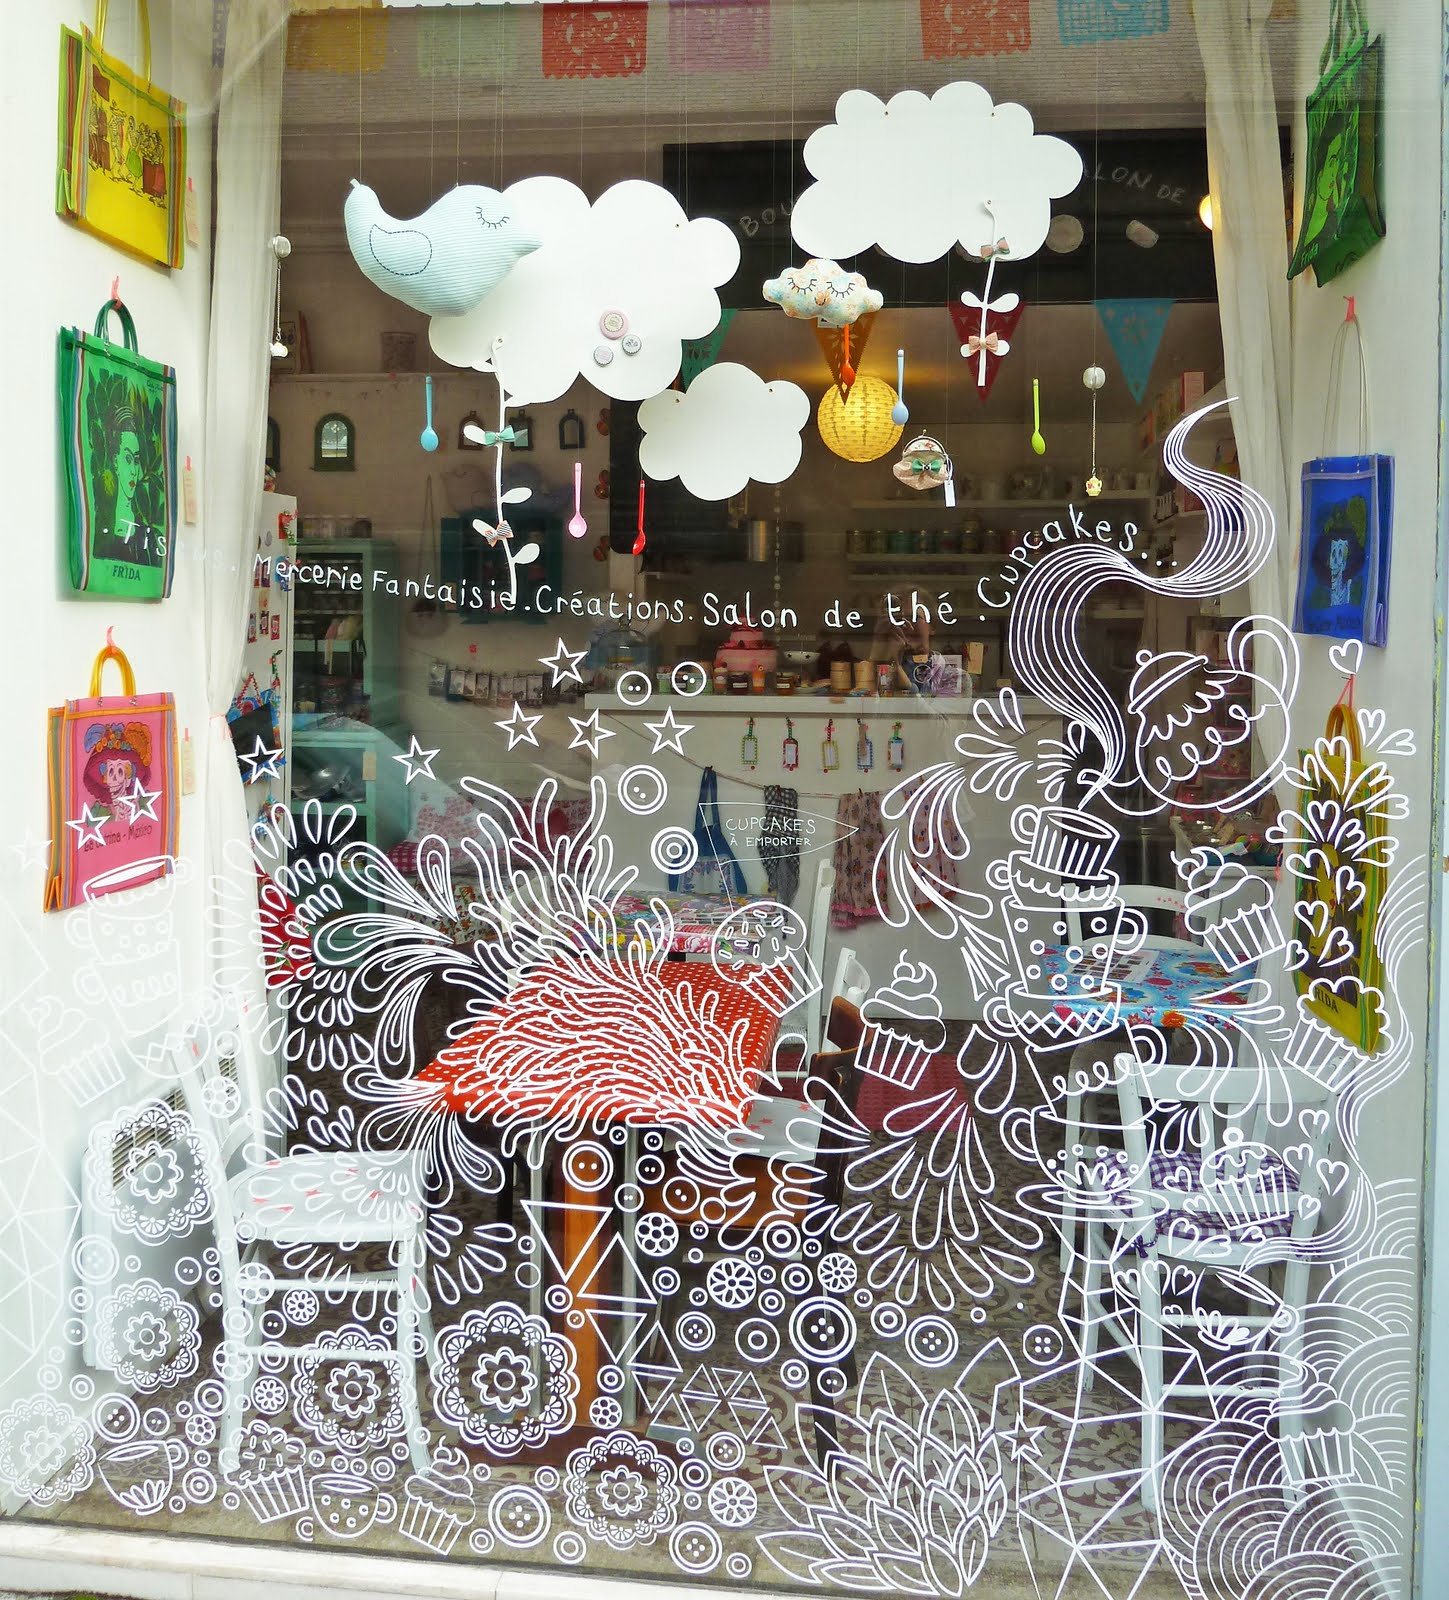 Drawn store shop window Drawn great very you with